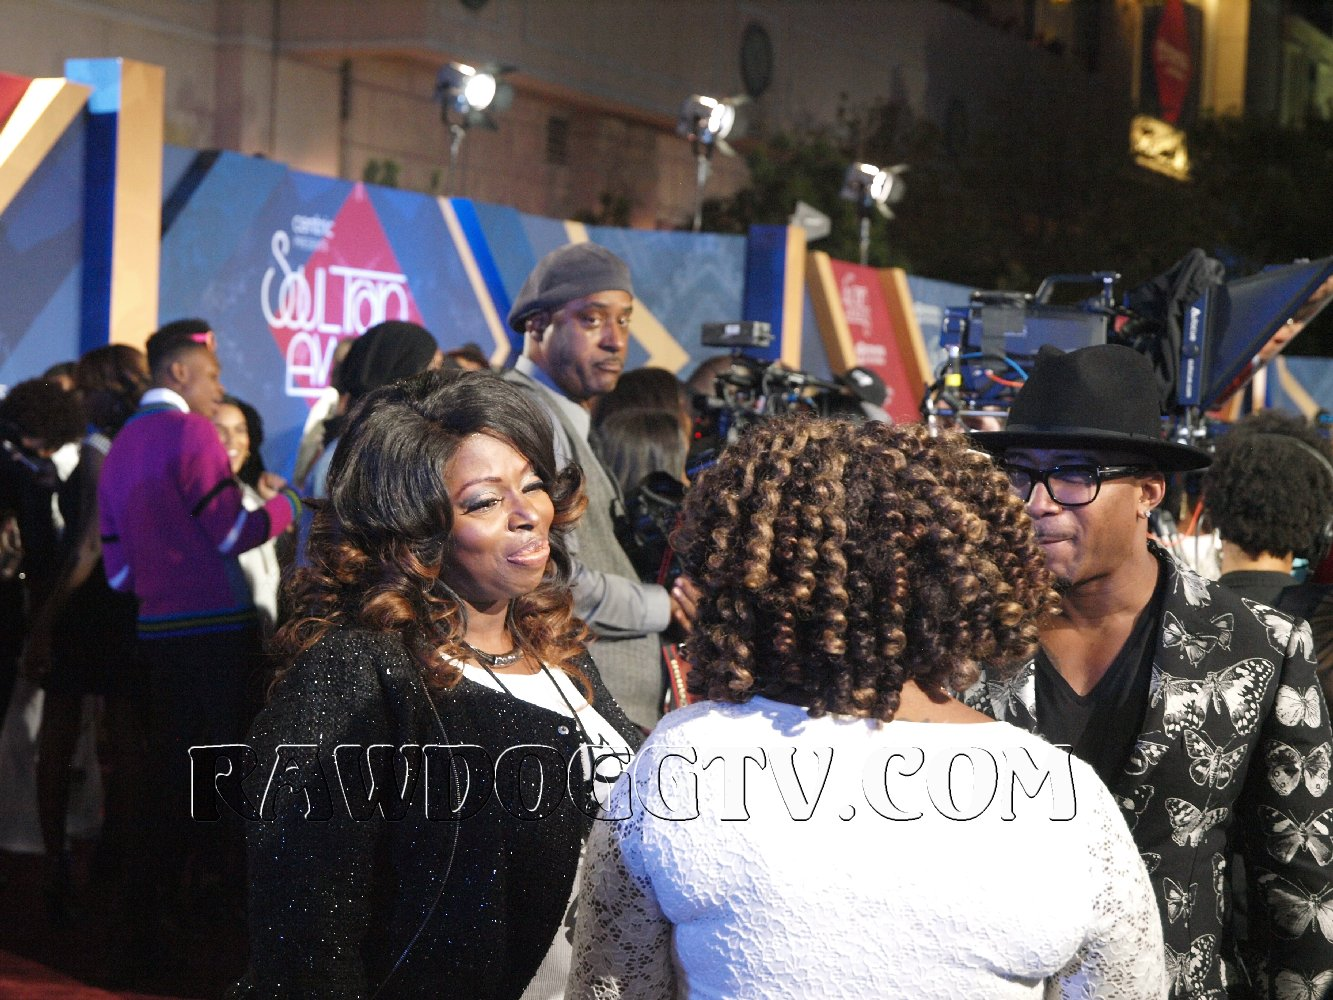 soul-train-music-awards-2016-photos-air-date-nov-27th-bet-centric-pr-mobilewire-305-490-2182-24